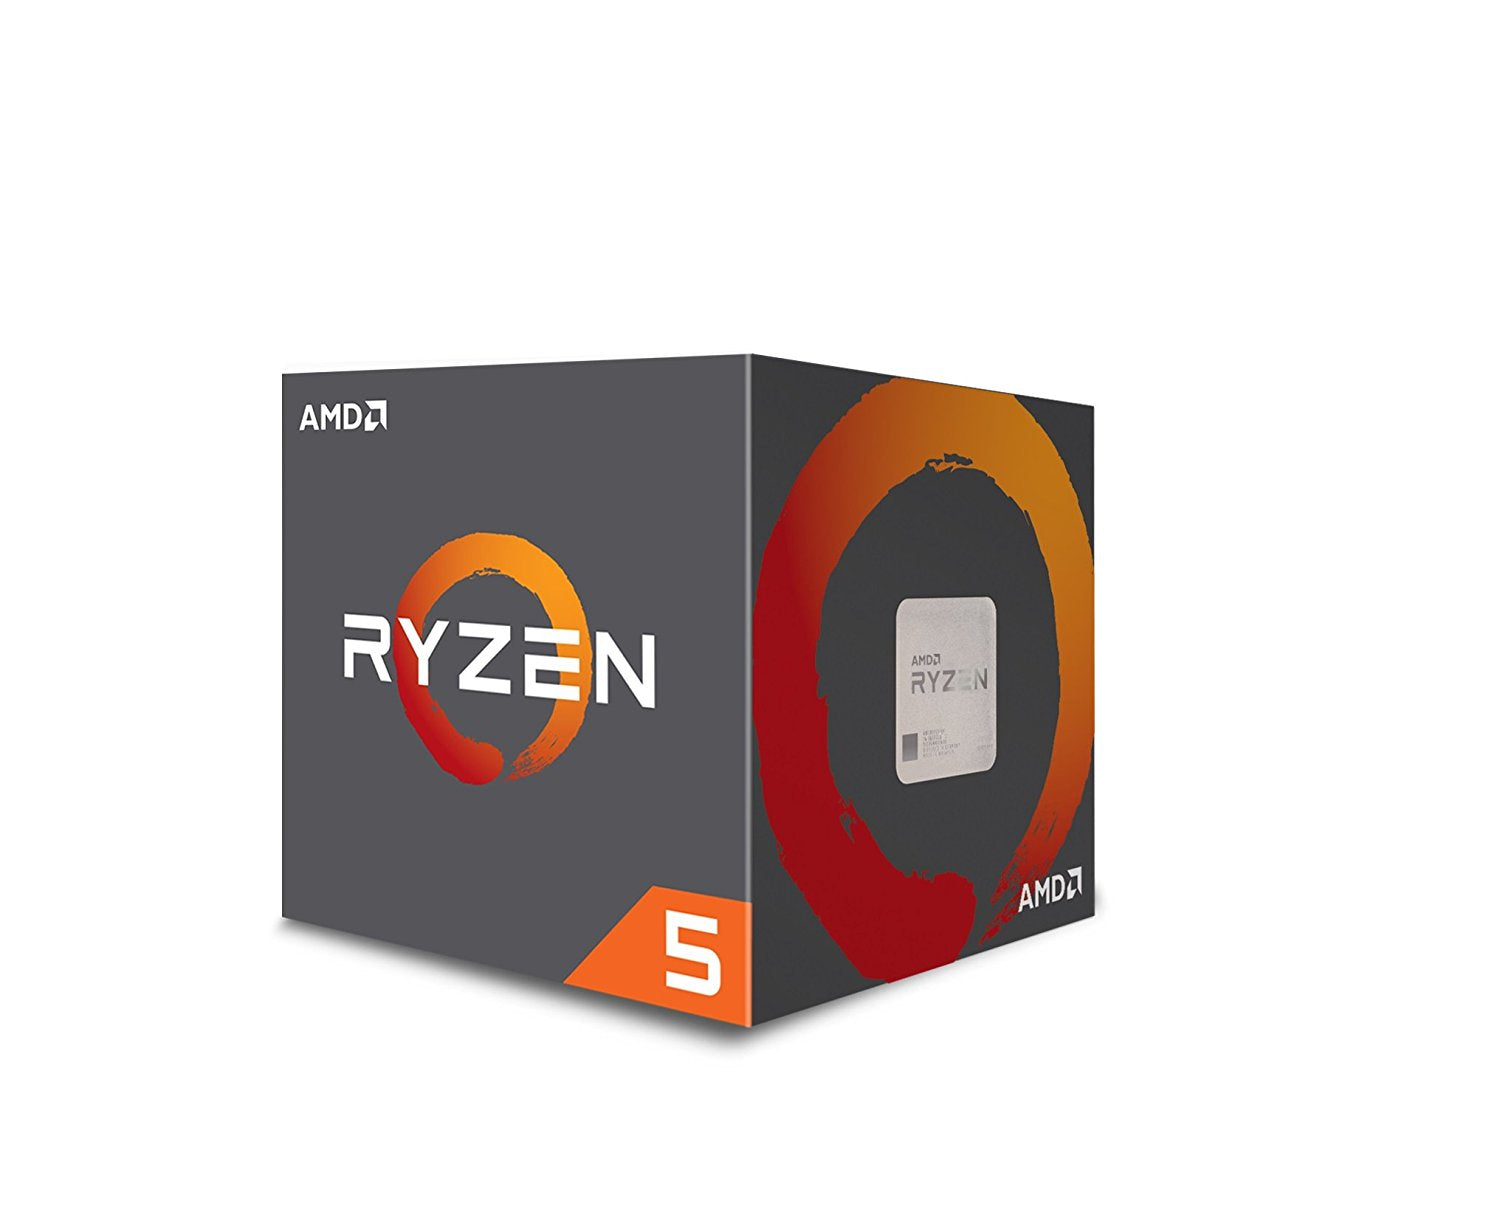 AMD Ryzen 5 2400G, 4 Core AM4 CPU, 3.9GHz 6MB 65W w/Wraith Stealth Cooler Fan RX Vega Graphics Box | Afterpay with Oxipay